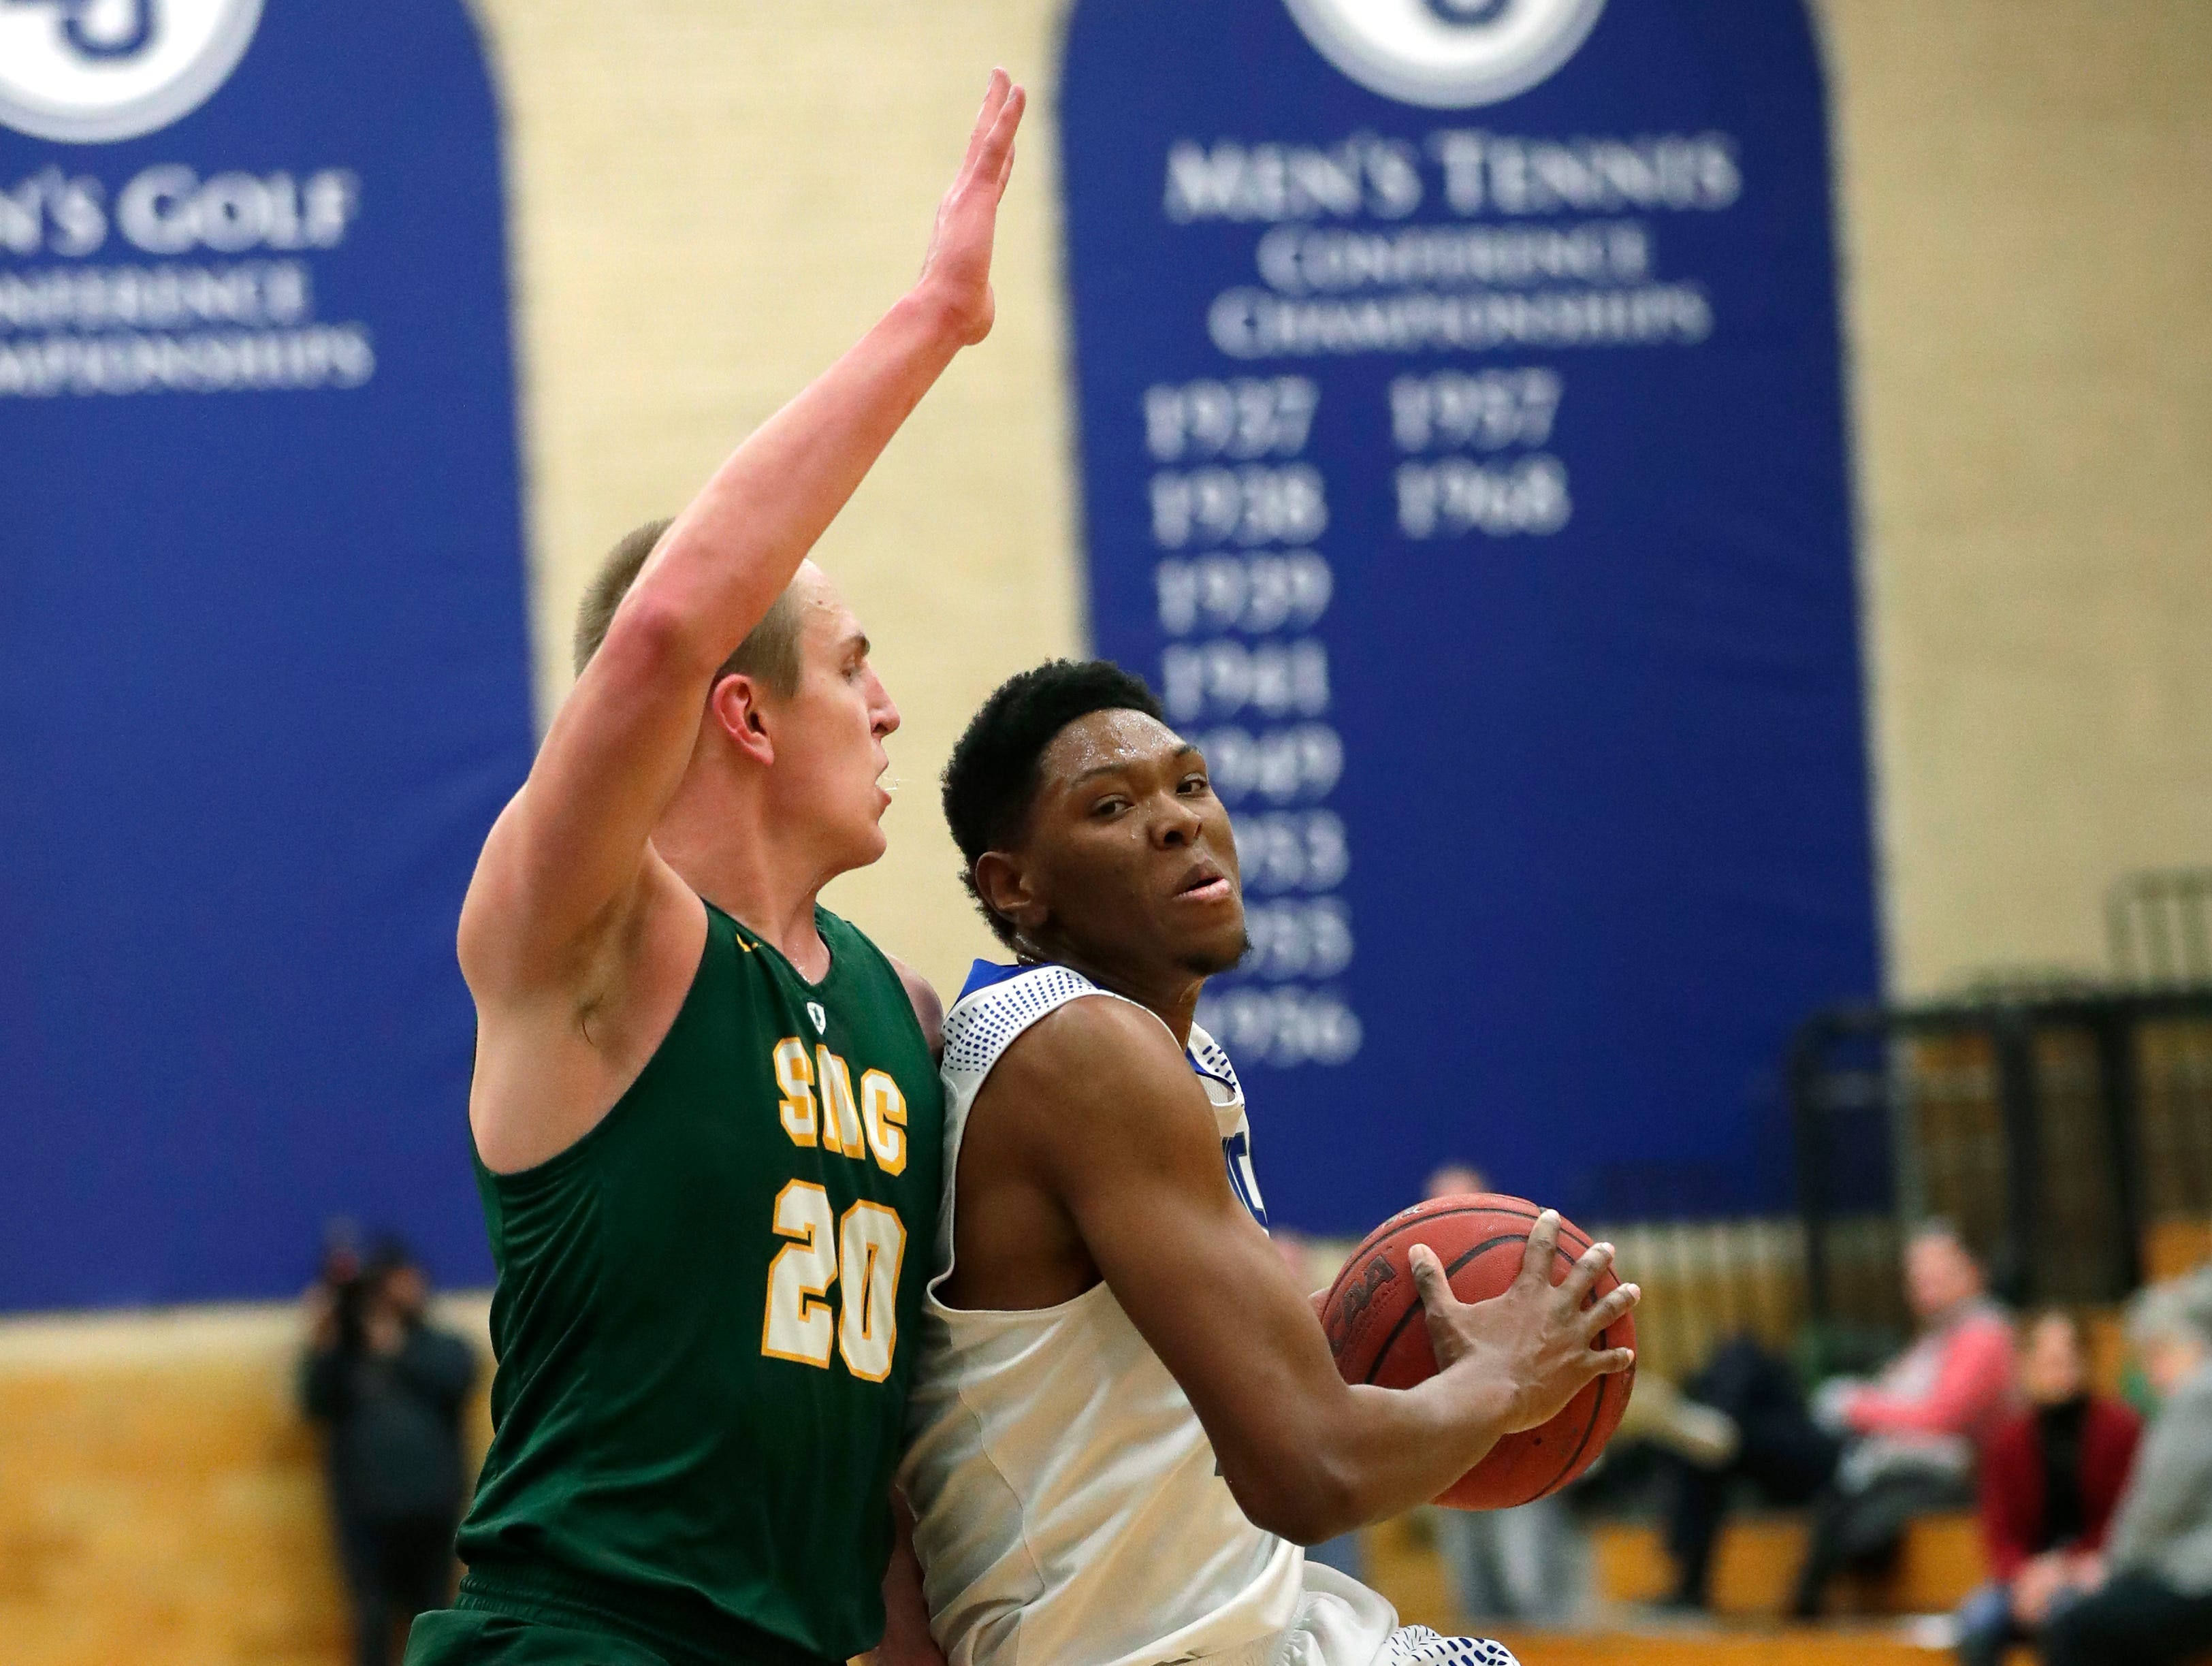 Lawrence University's Bryce Denham (23) drives to the basket against St. Norbert College's Nolan Beirne (20) during their men's basketball game Thursday, January 31, 2019, at Alexander Gymnasium in Appleton, Wis. 